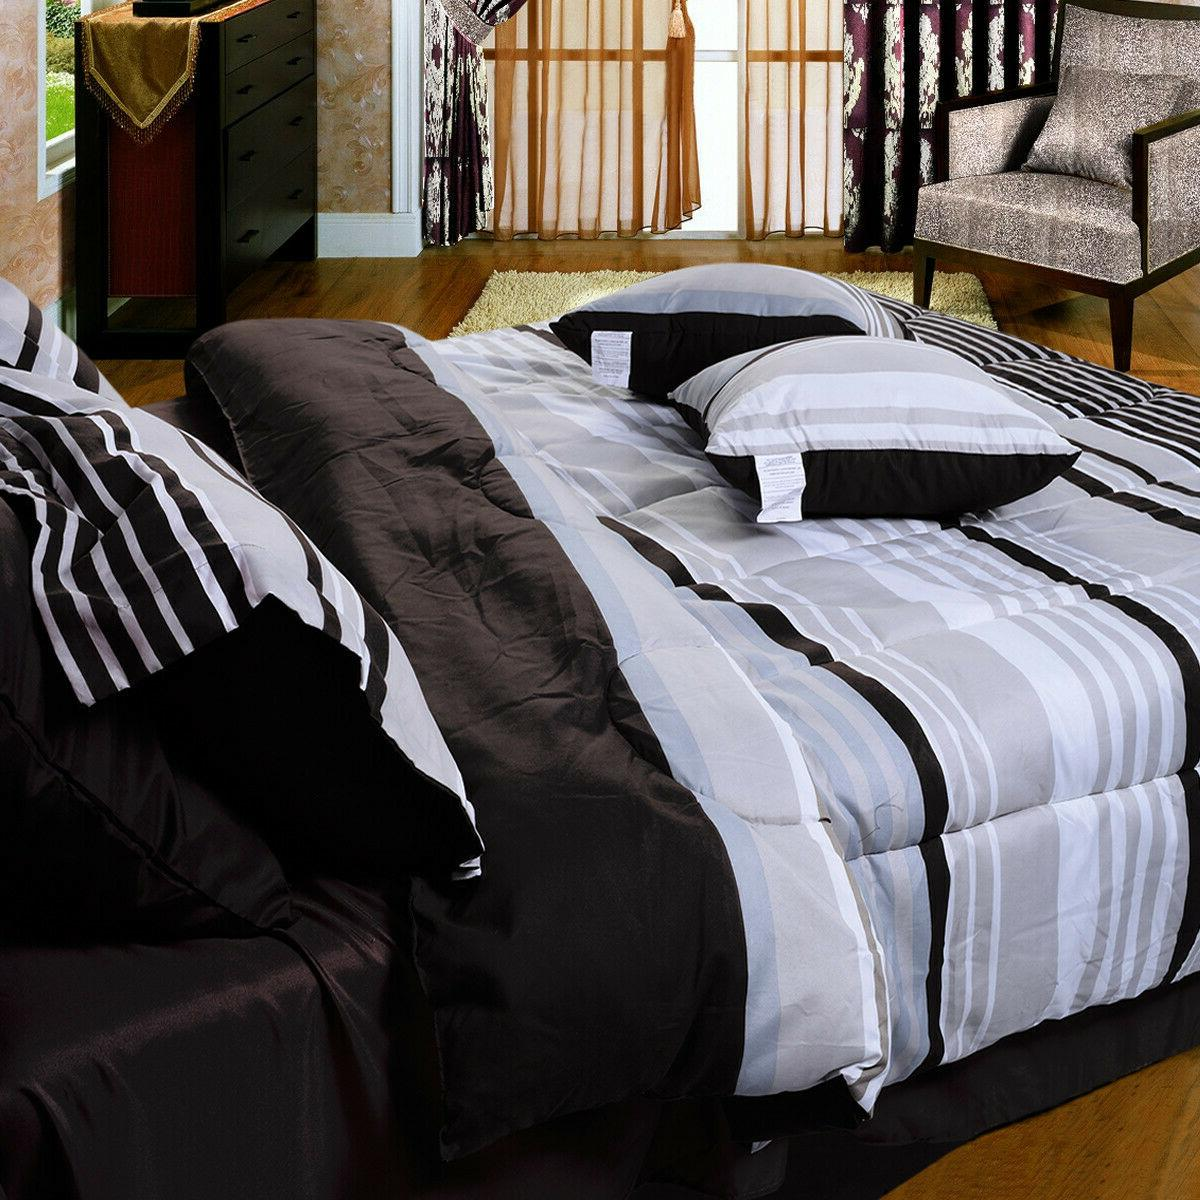 10 Piece Comforter Set Microfiber Striped & Queen Size